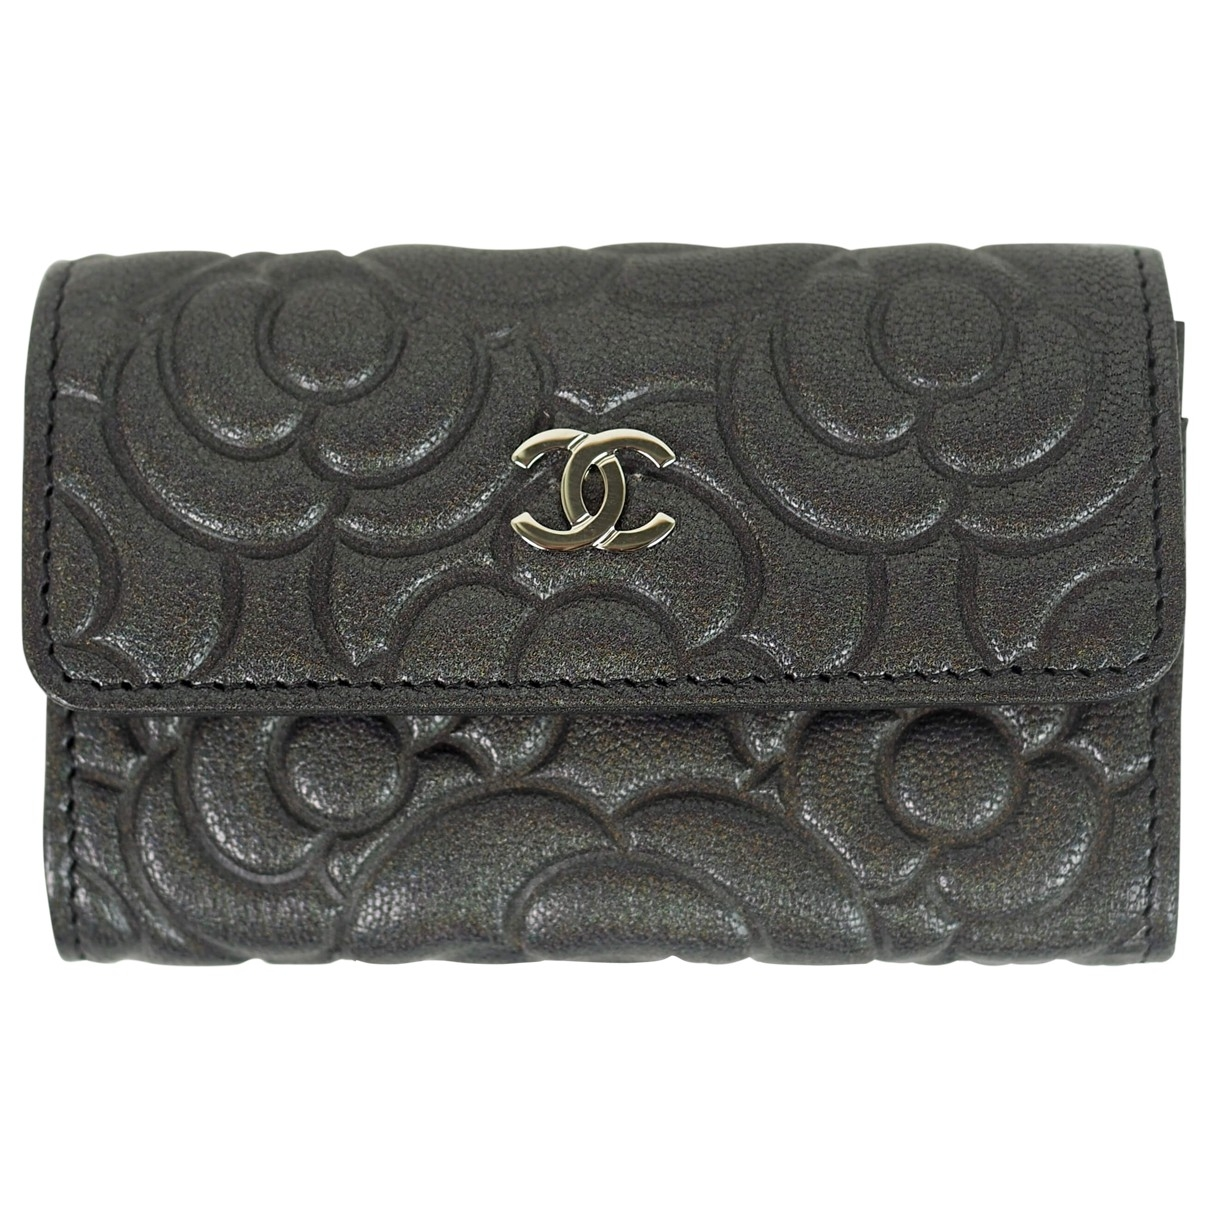 Chanel \N Portemonnaie in  Anthrazit Leder